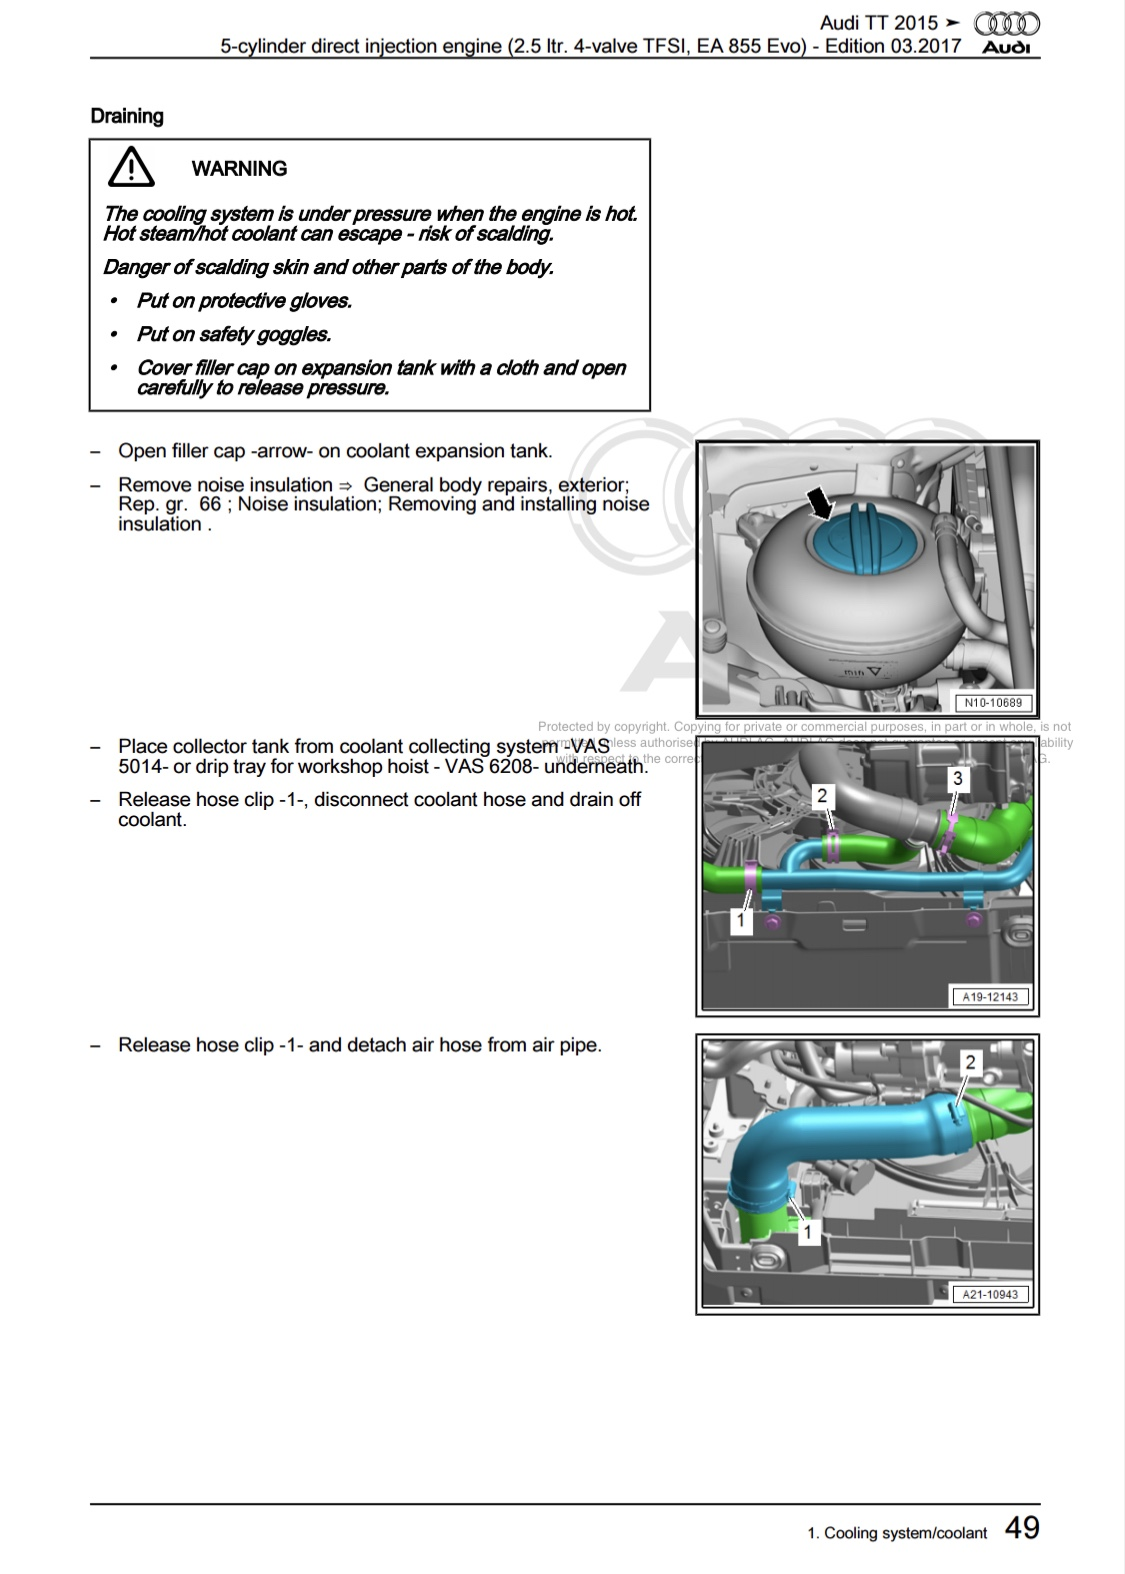 Engine Coolant Warning General Cooling Diagram Img